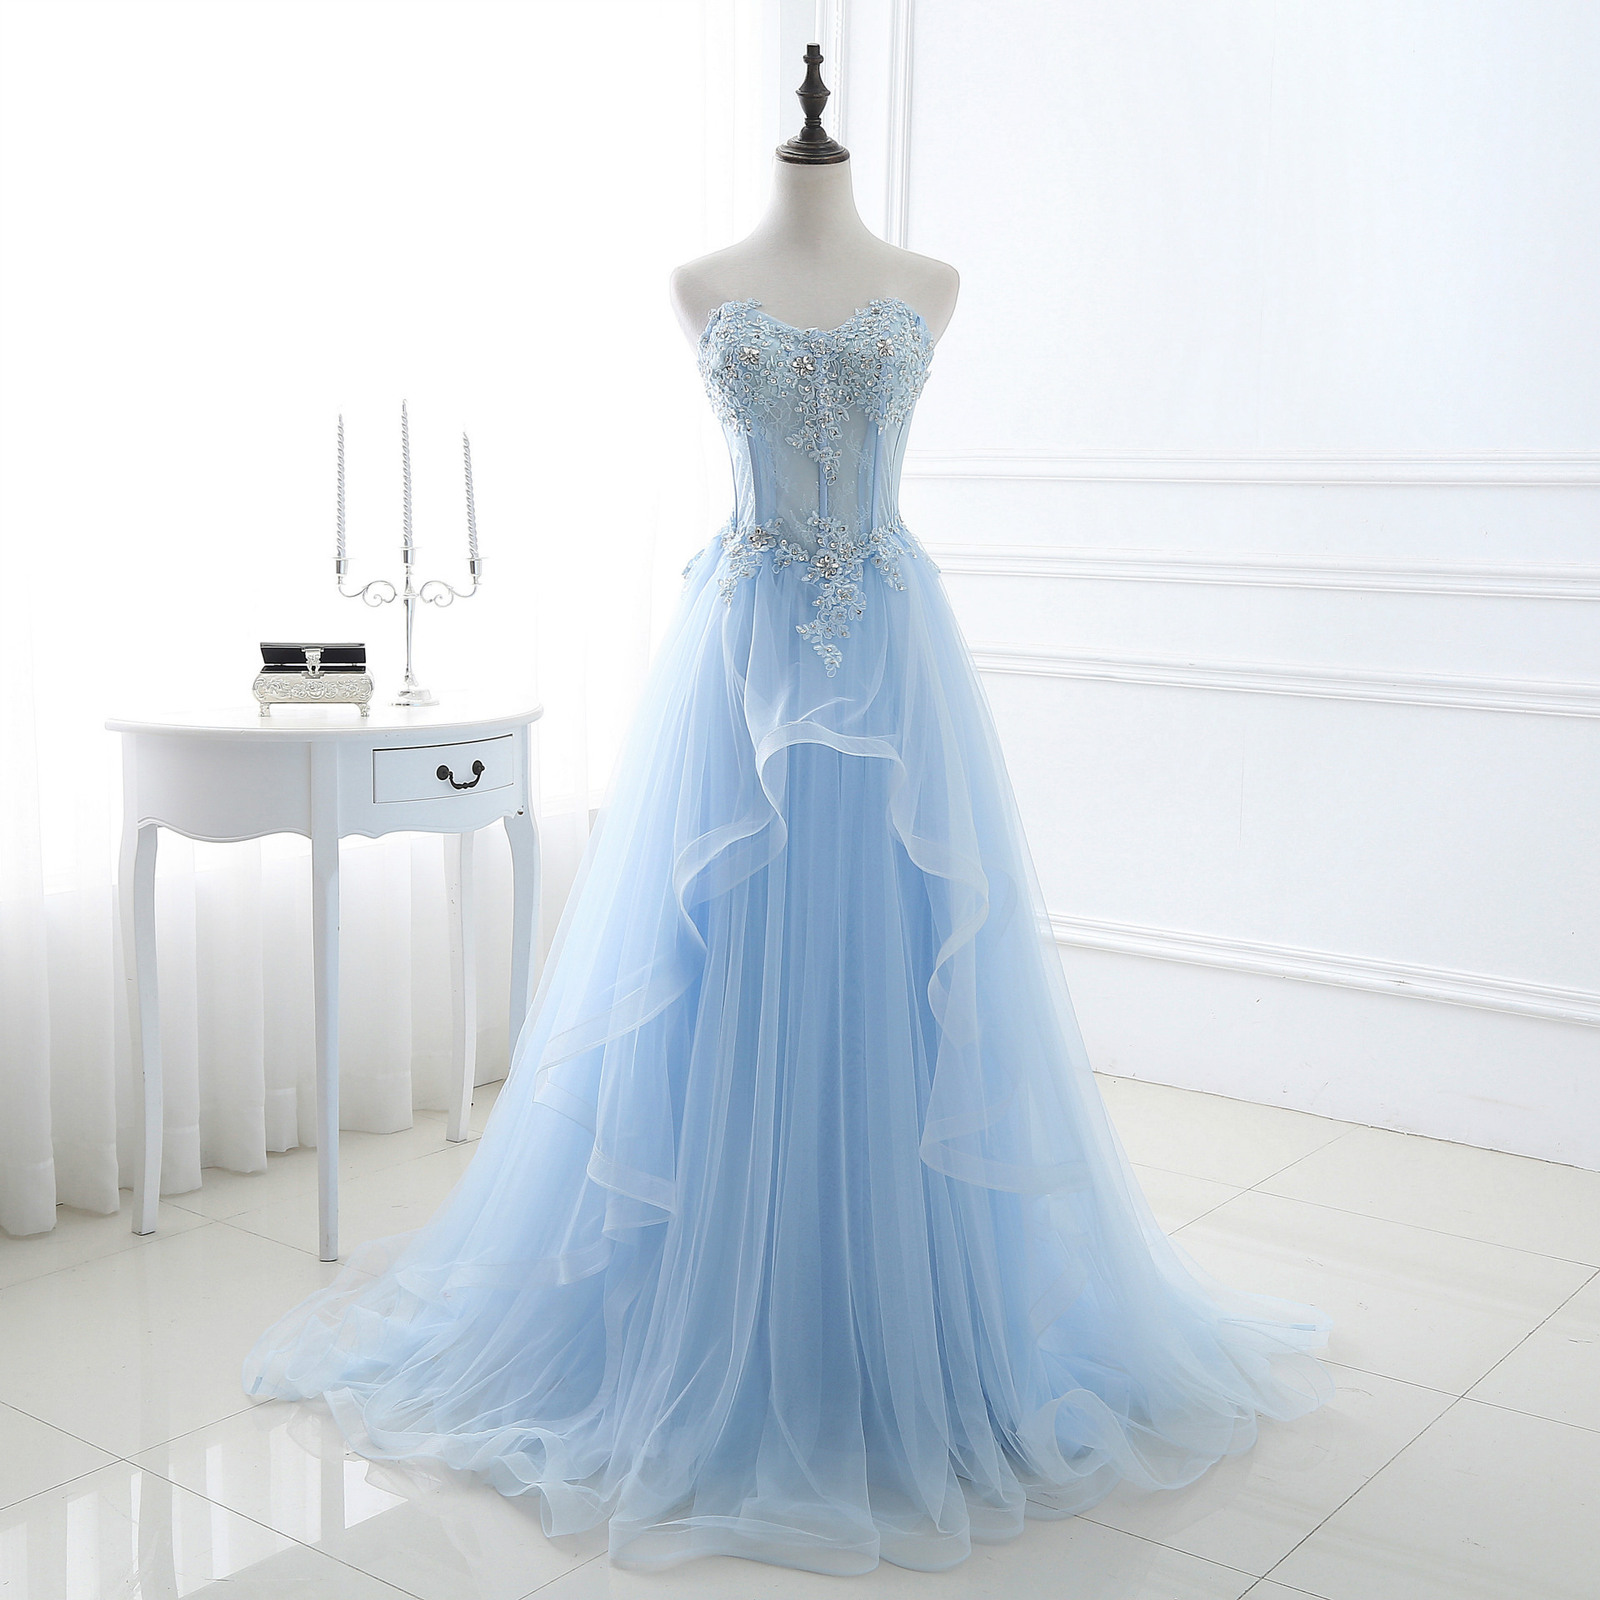 Primary image for Women's Elegant Sweetheart Tulle Evening Dress For Formal Party With Appliques